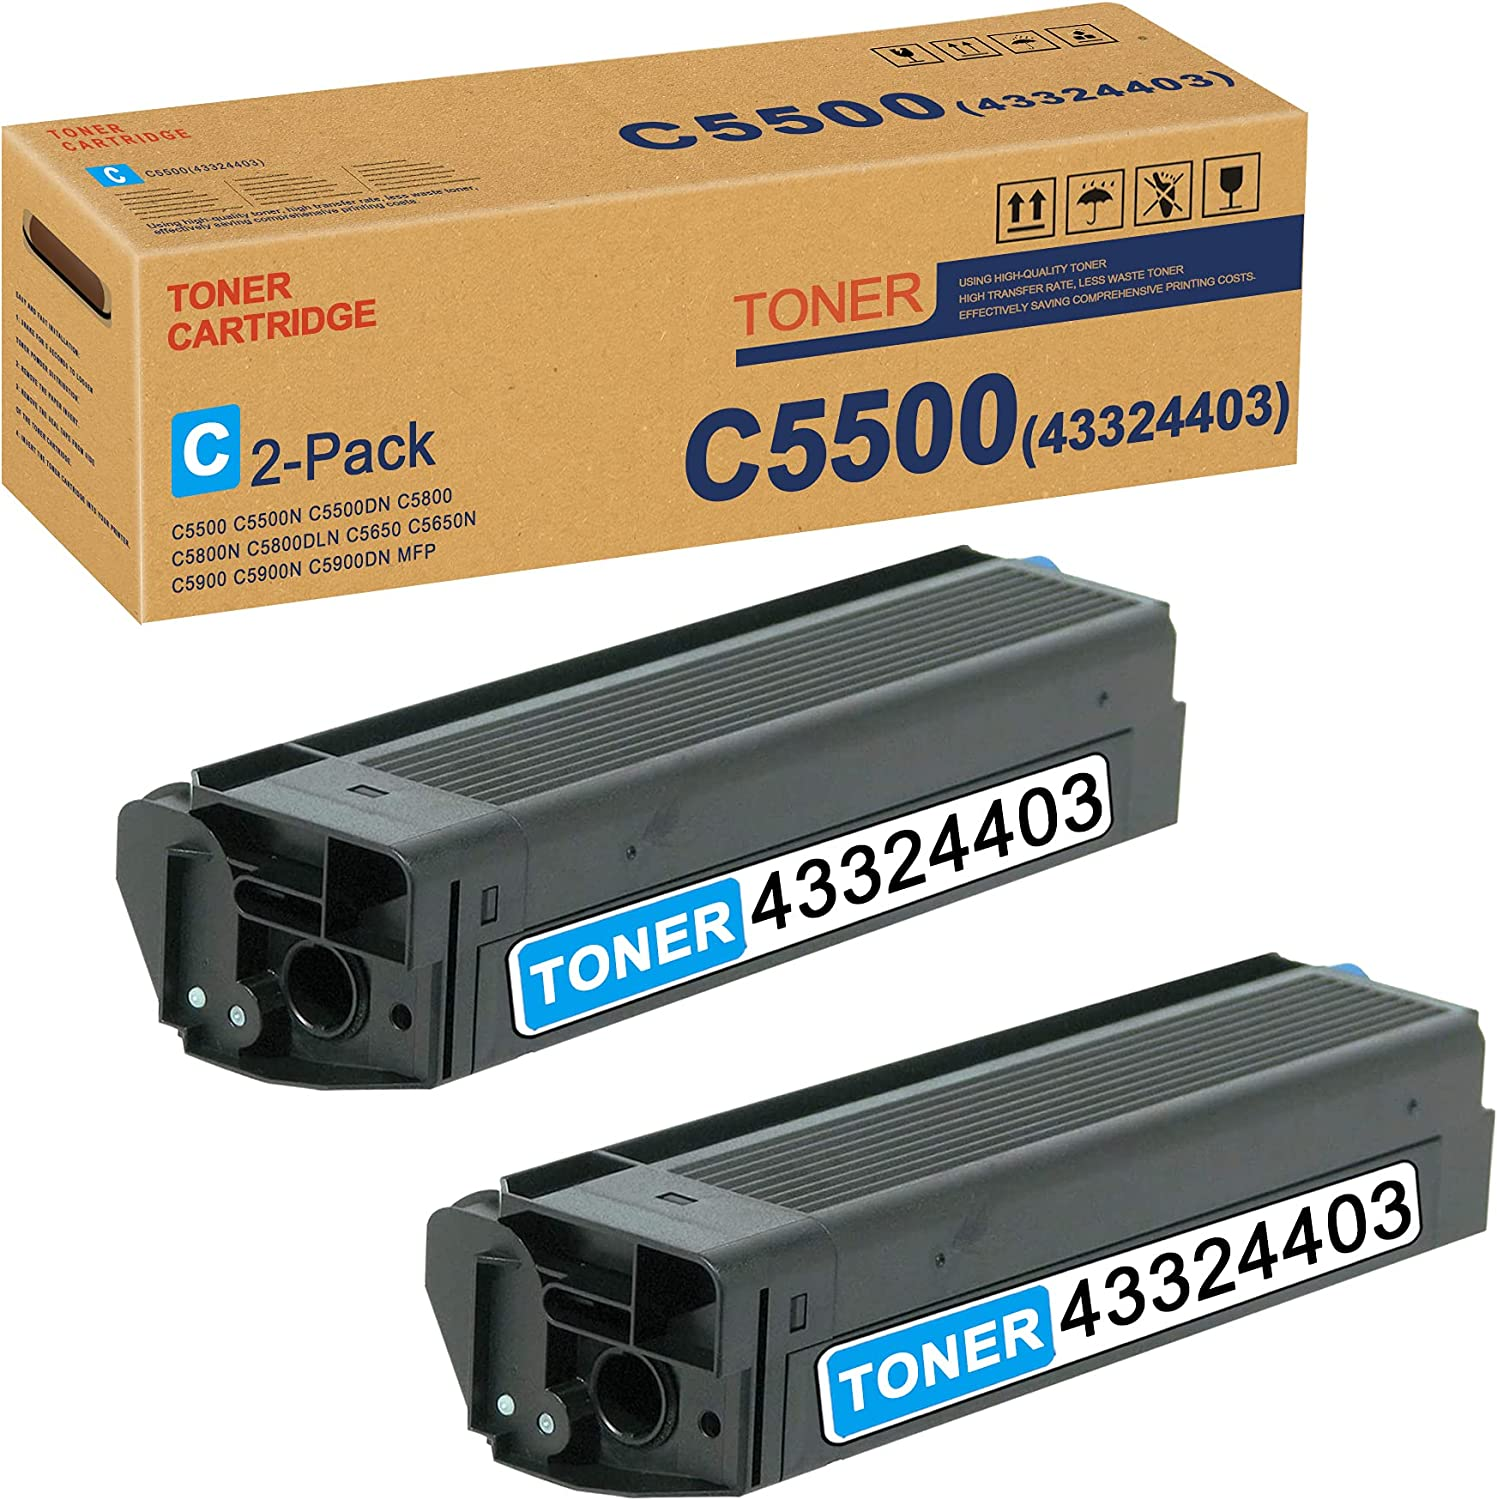 C5500 Year-end Special price gift 43324403 Toner Cartridge Cyan 2 OKI Replacement for Pack